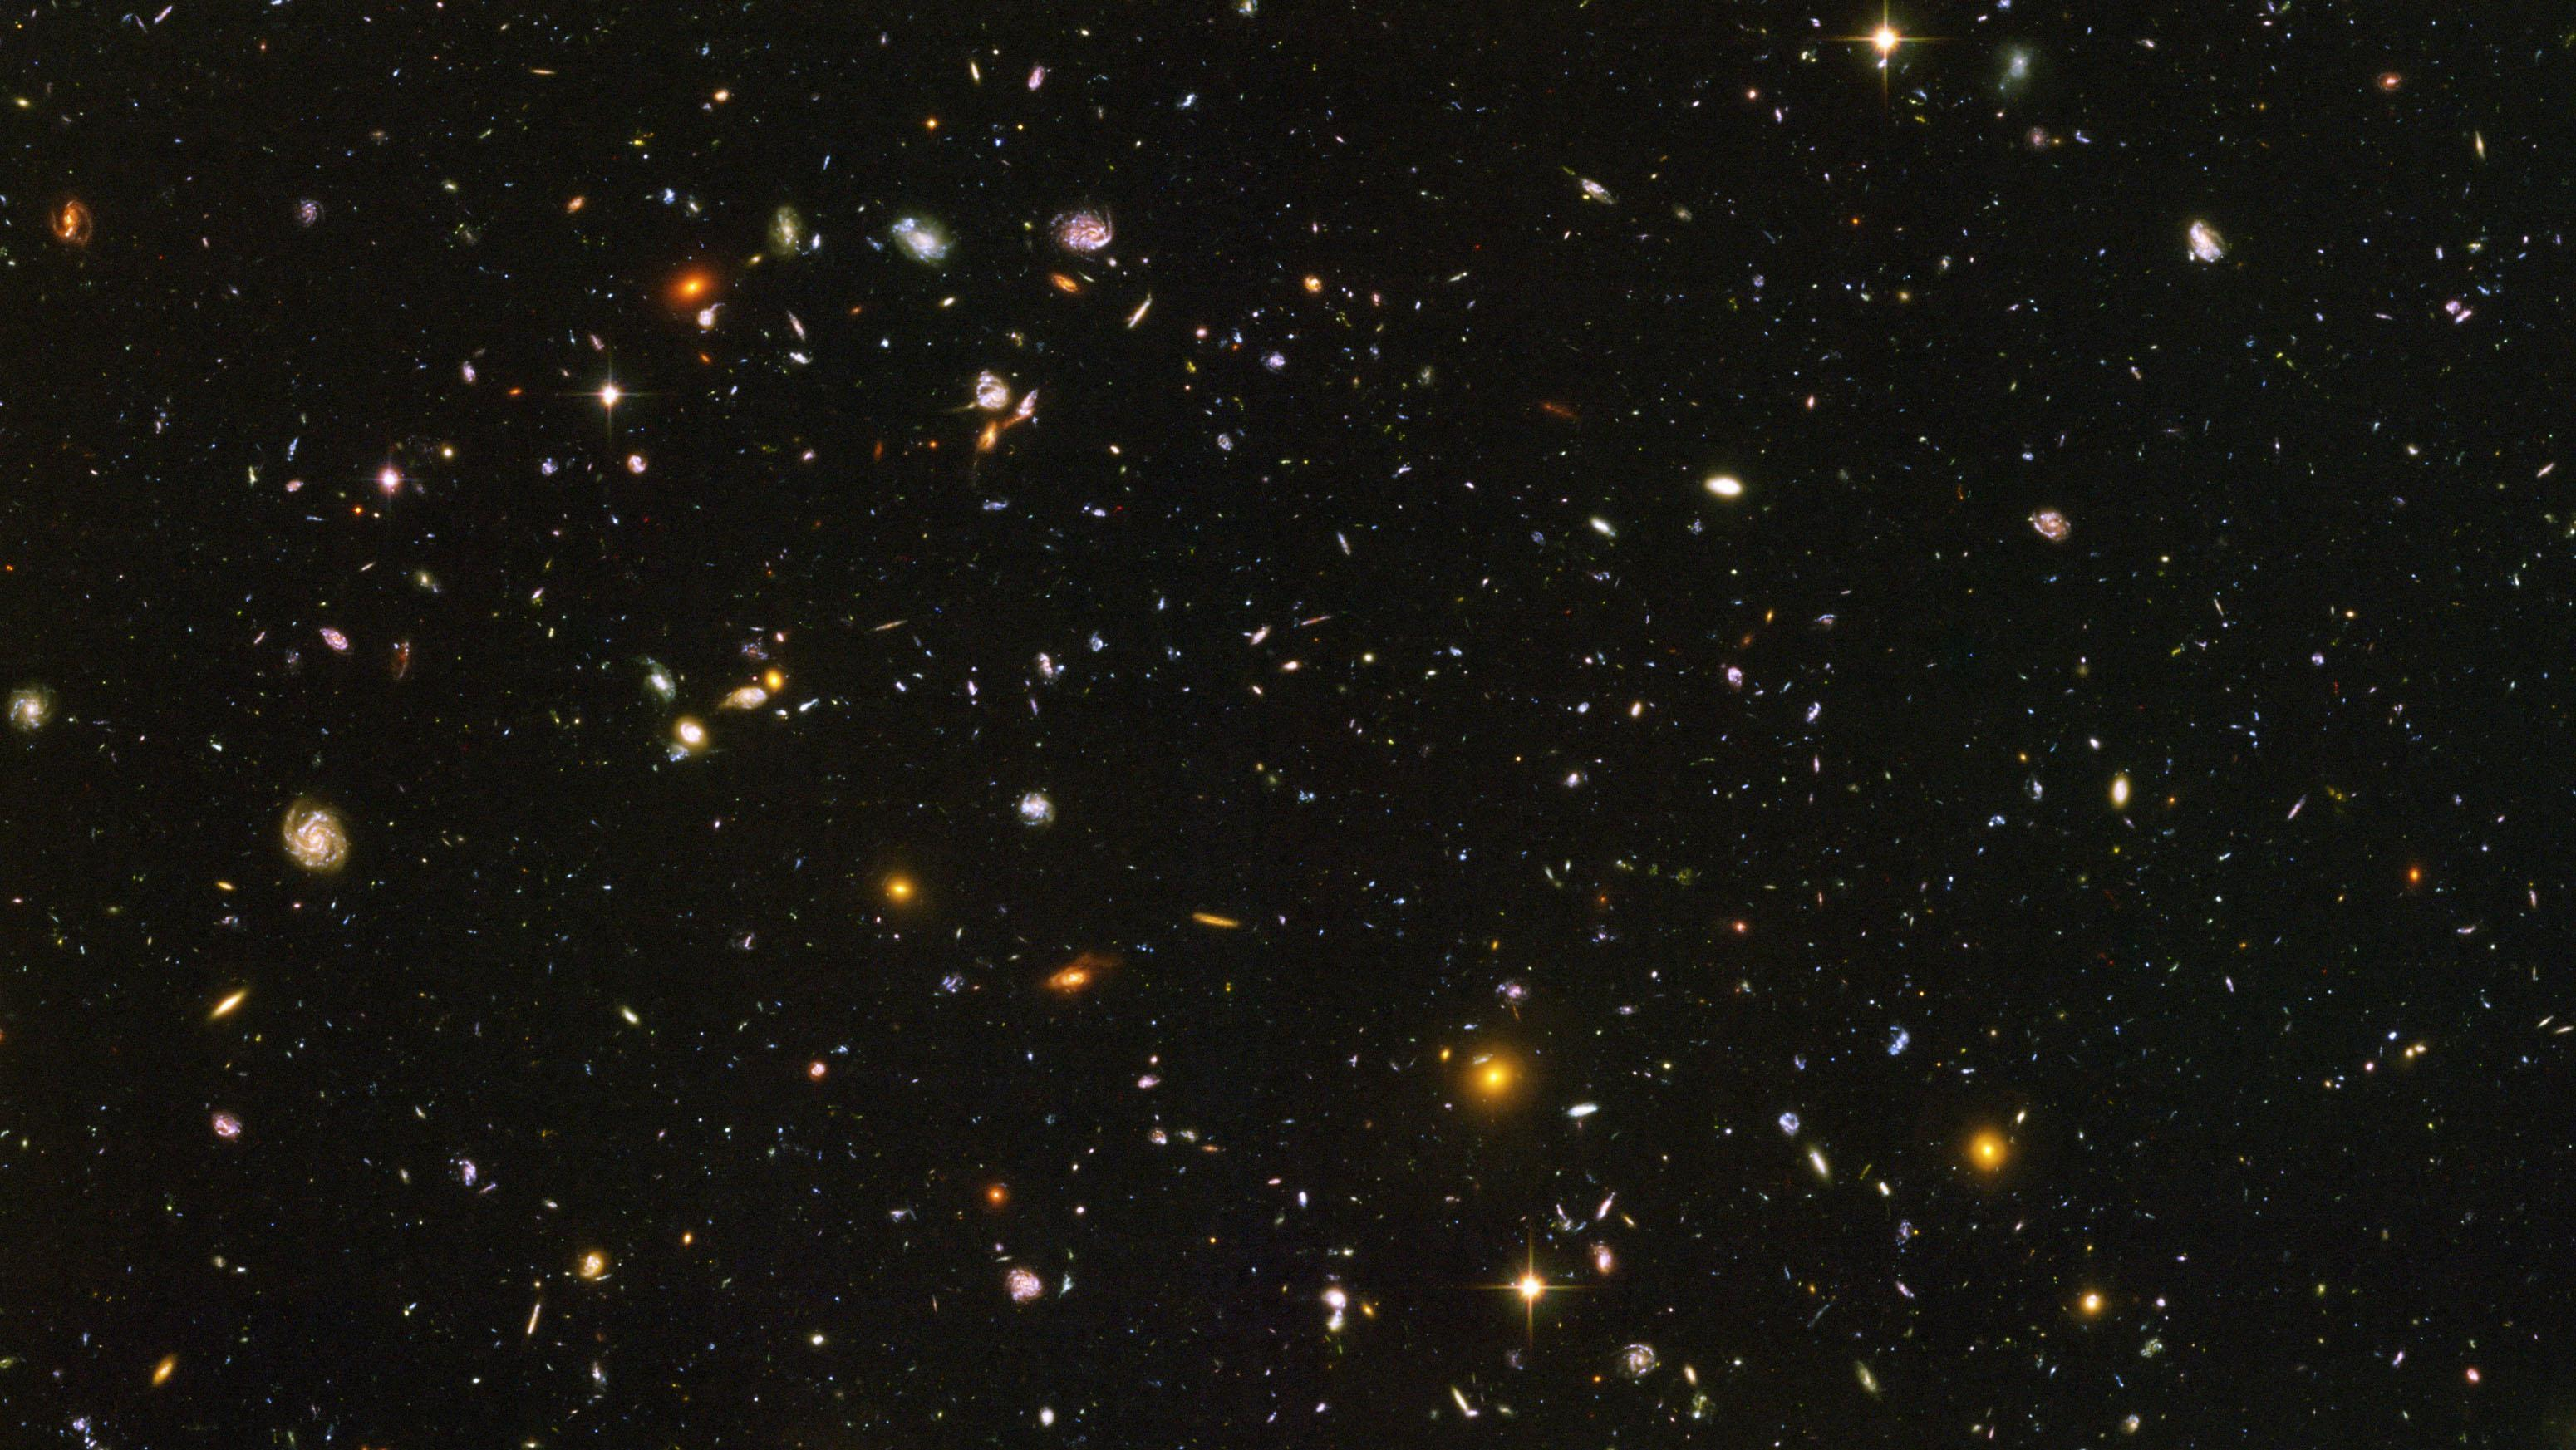 hubble universe hd - photo #20